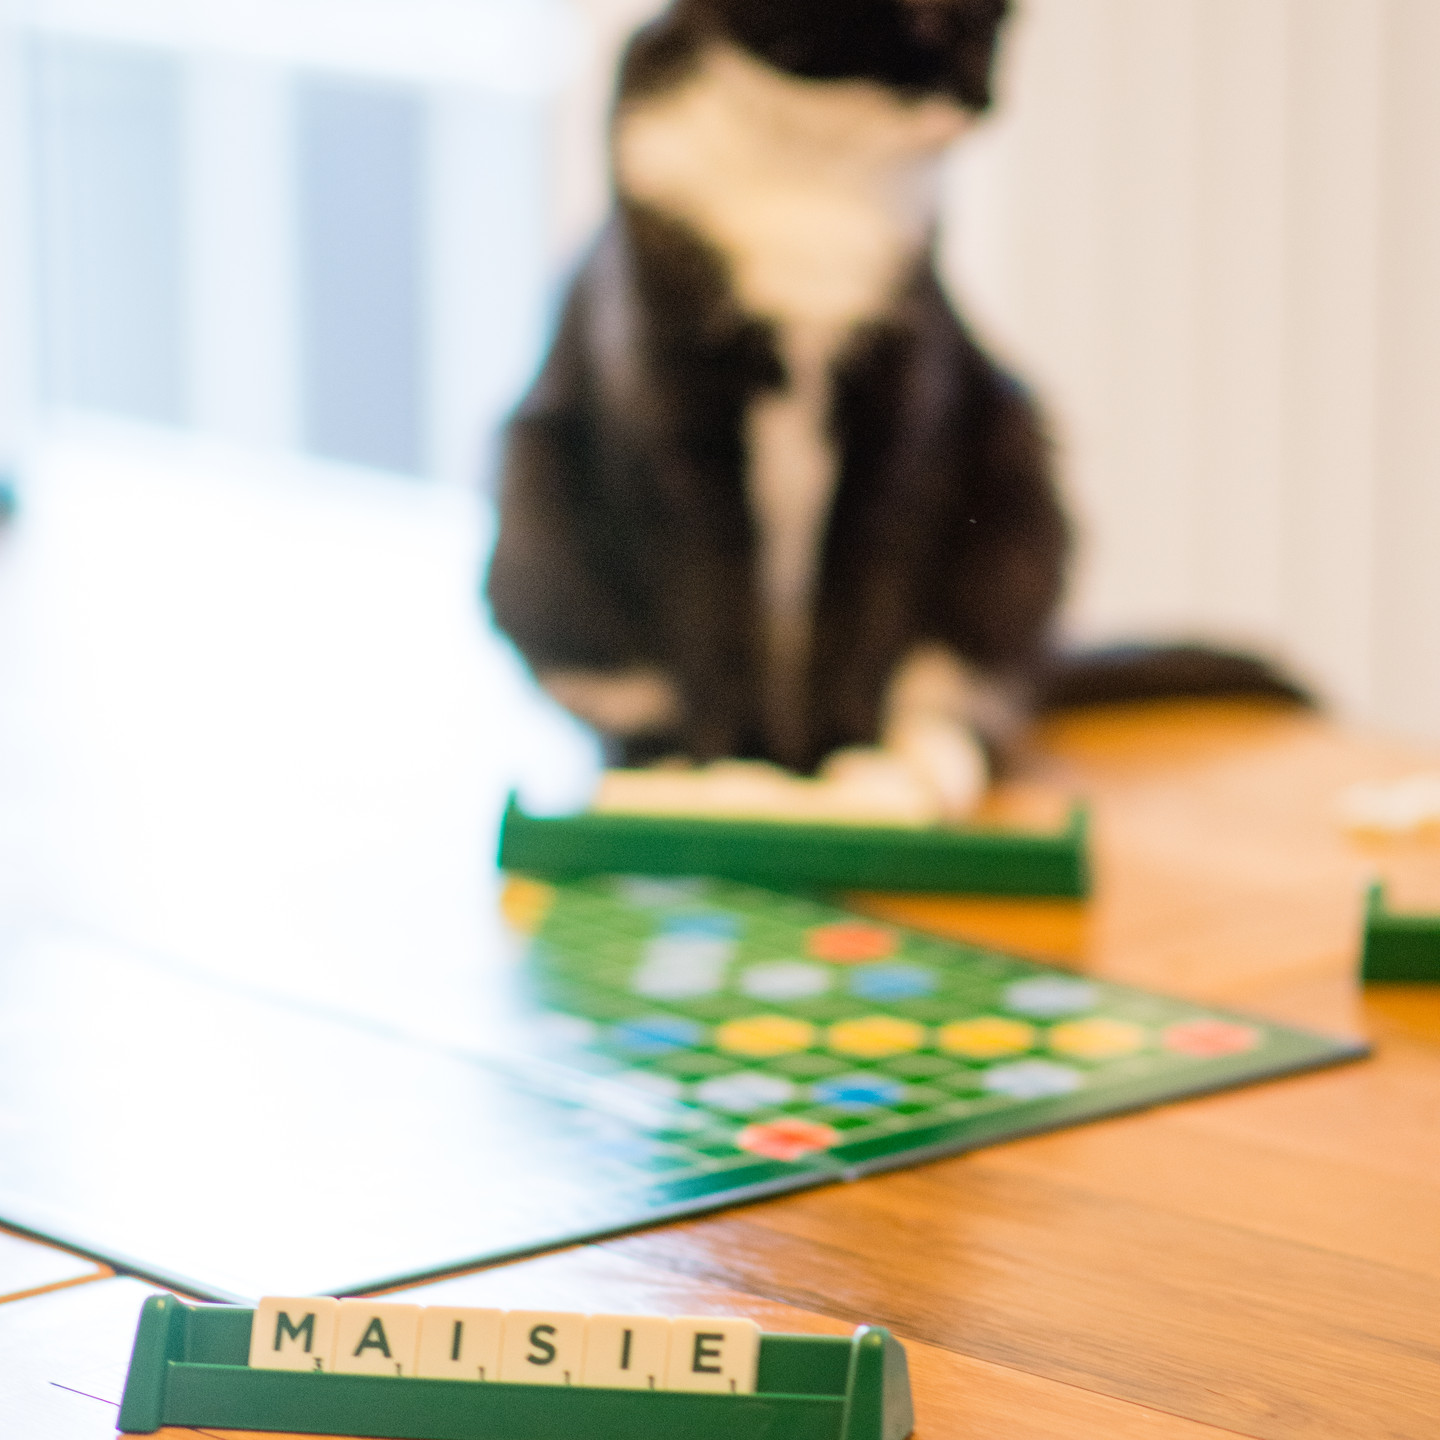 Lifestyle Photographer Solihull, Little cat sitting by the scrabble board